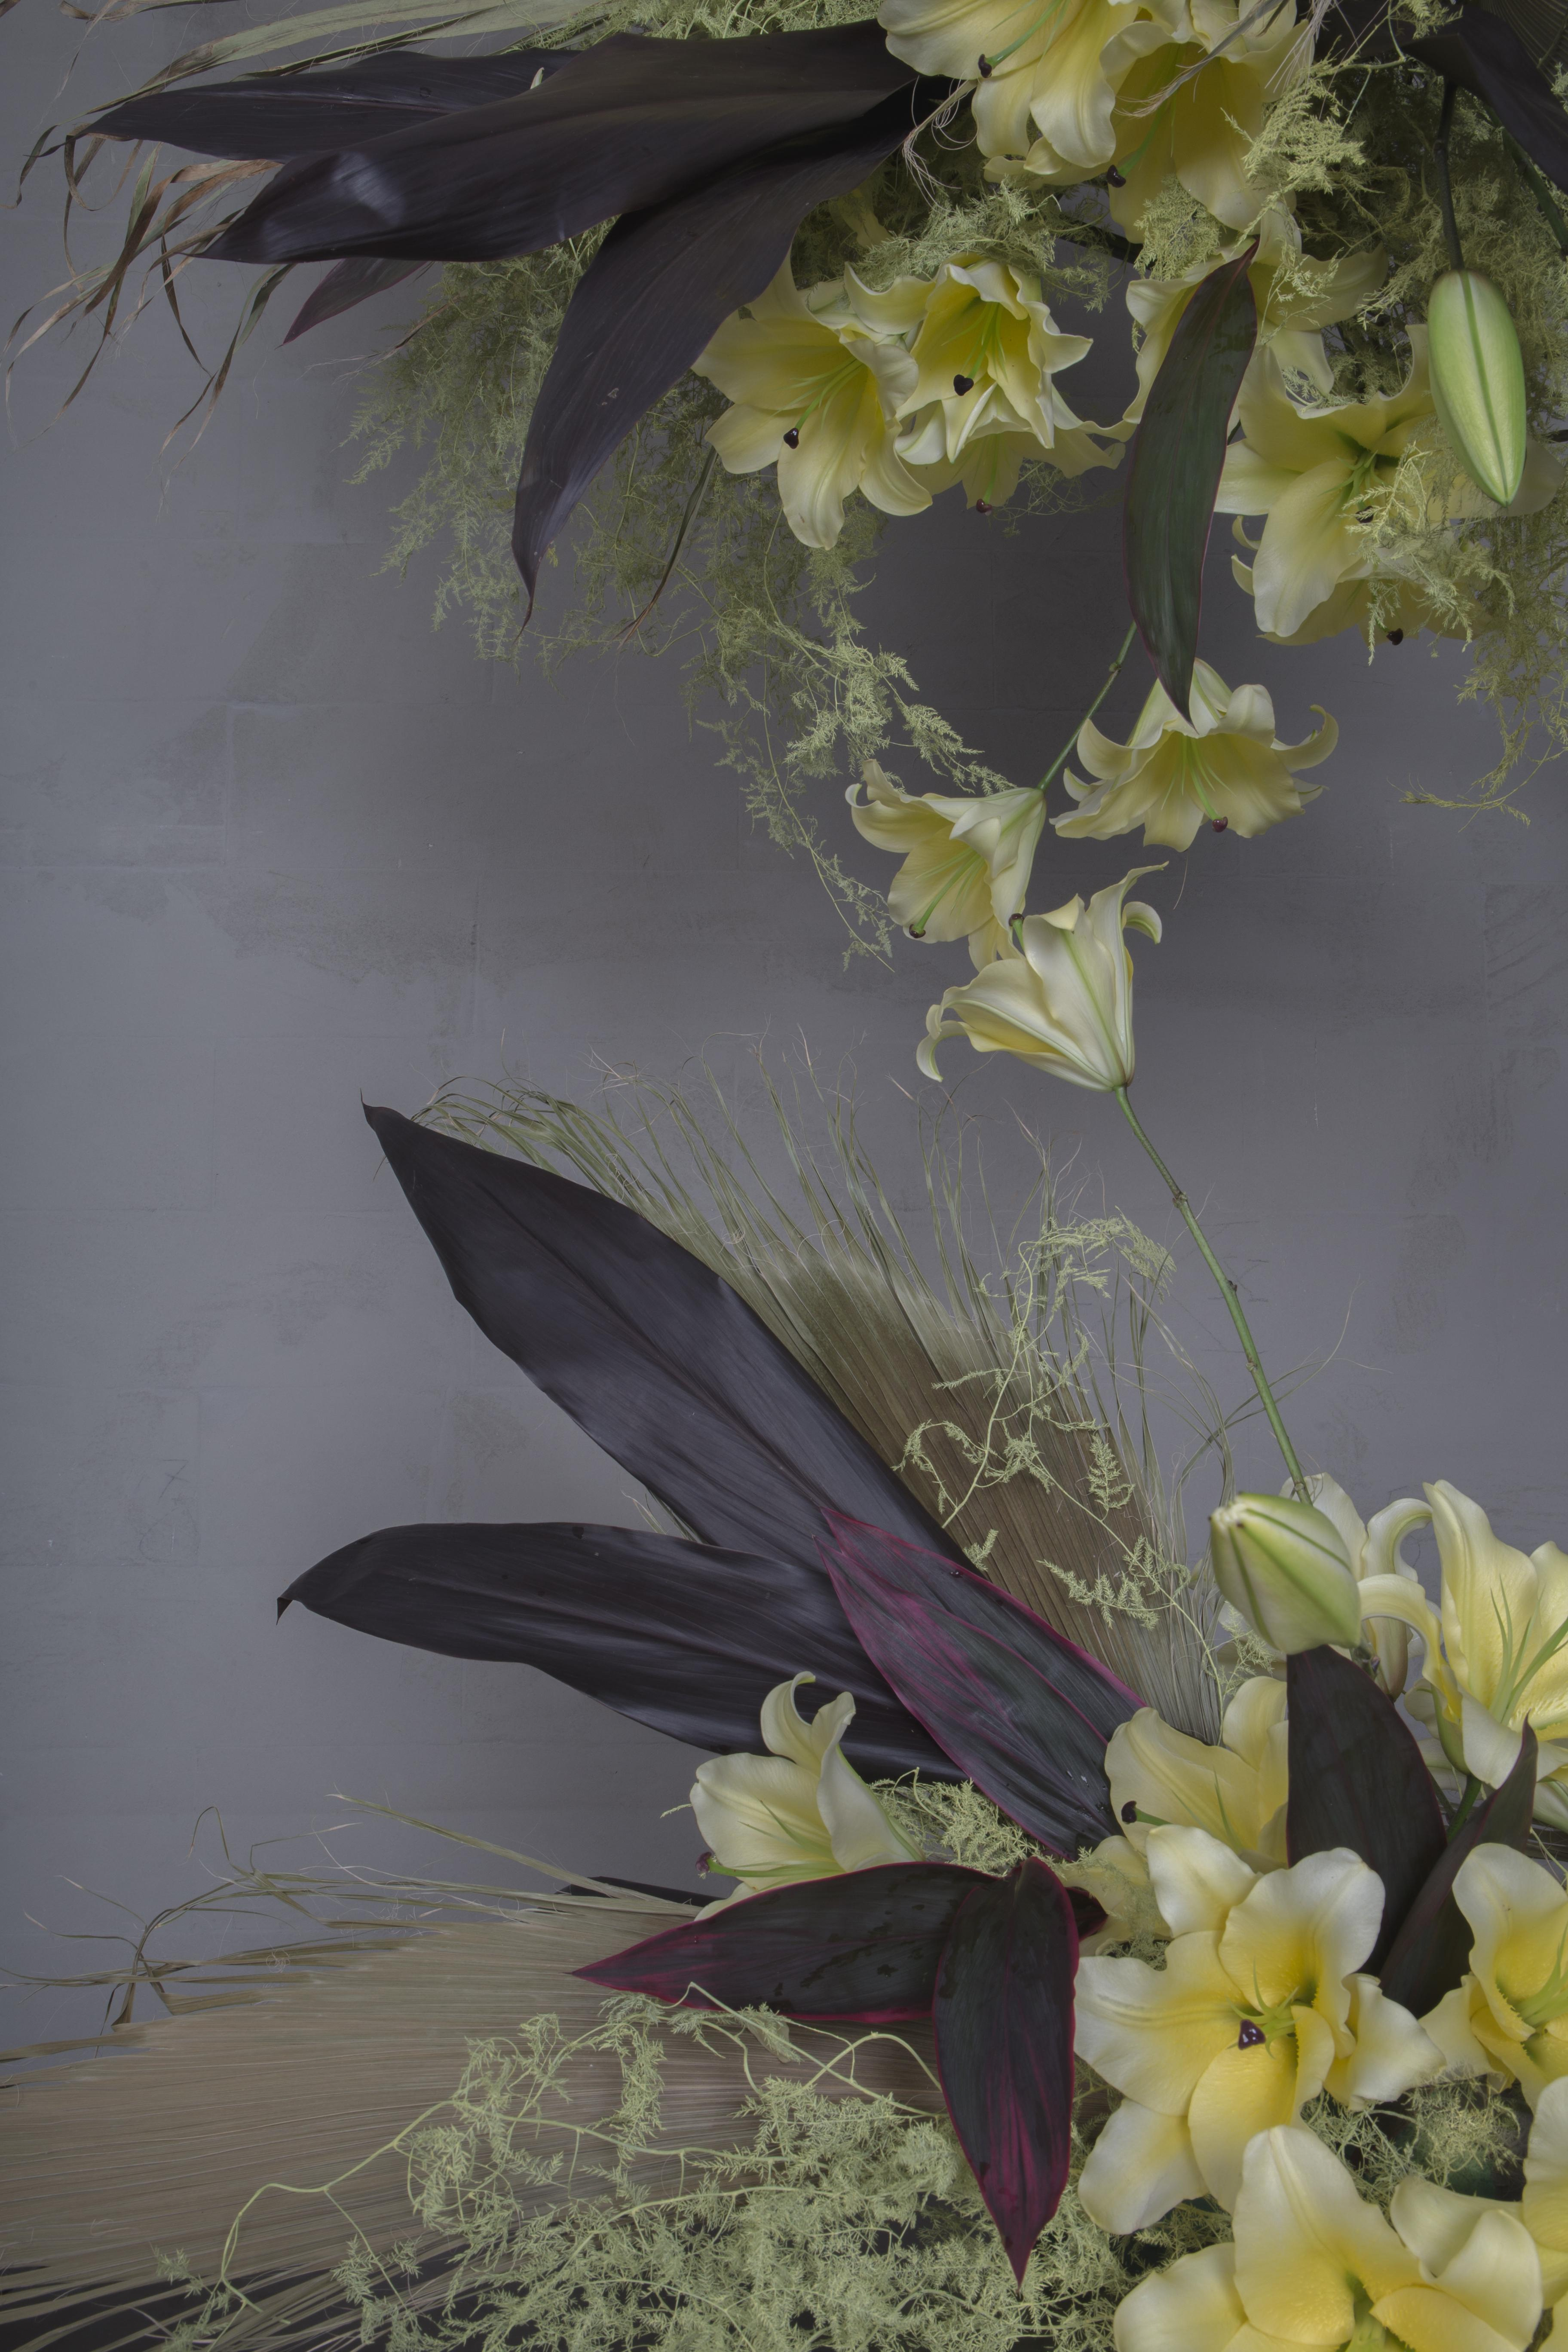 Finecut-weddings-collection-2019-muted-tones-with-dry-washingtonia-fan-palm-leaves-pastel-dyed-asparagus-fern-and-pale-yellow-asiatic-lilies-with-deep-red-cordyline-leaves